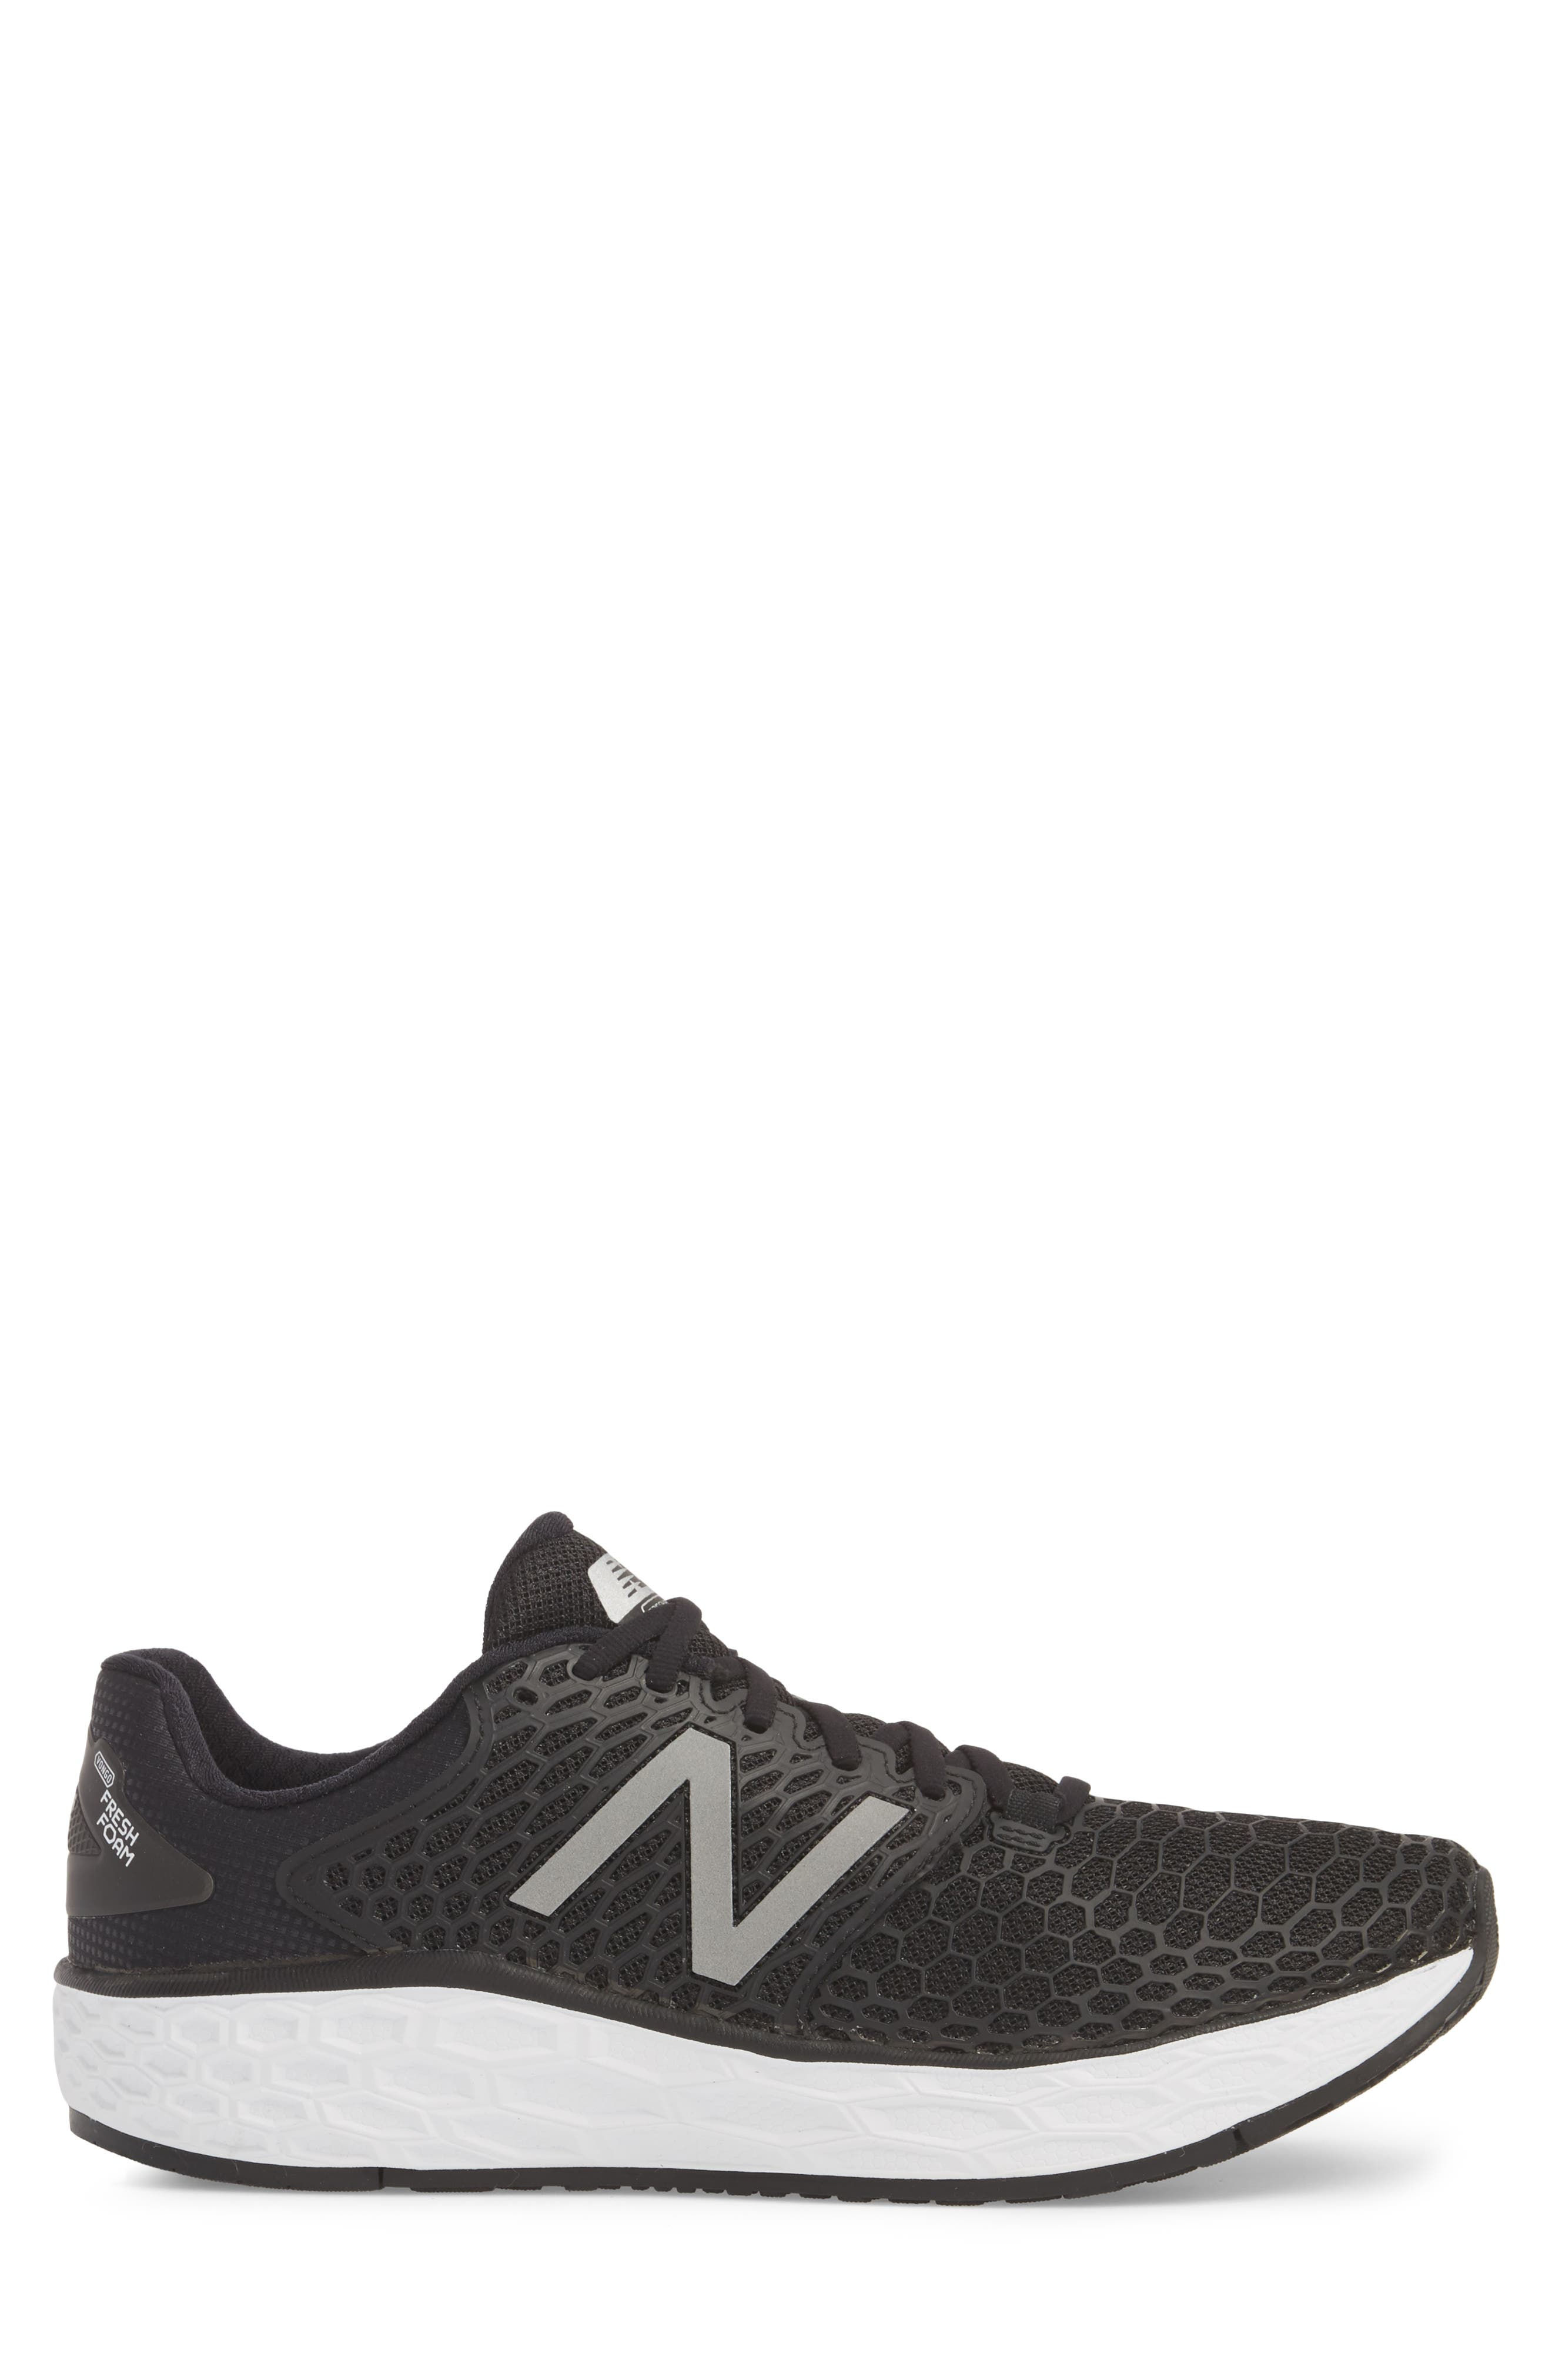 NEW BALANCE, Fresh Foam Vongo v3 Running Shoe, Alternate thumbnail 3, color, BLACK